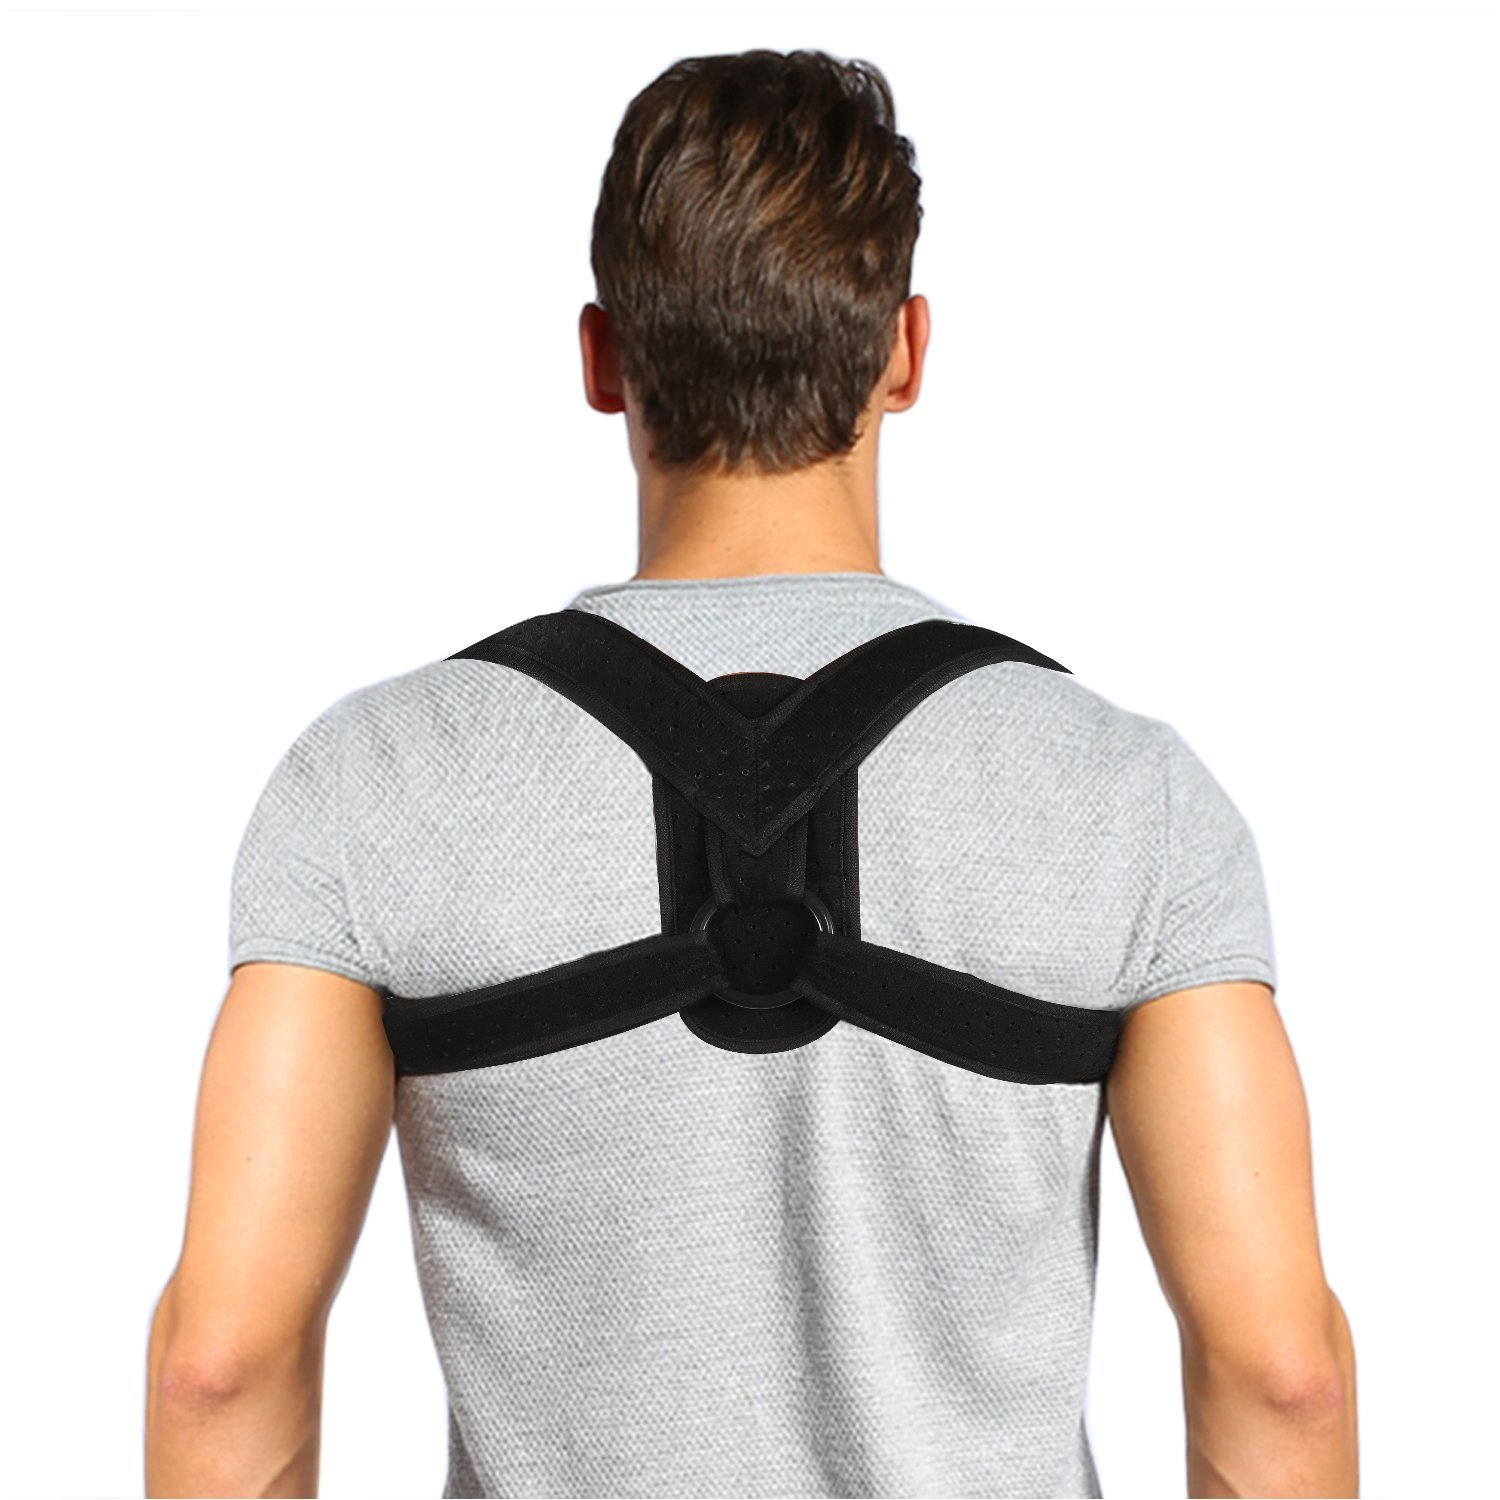 a39cd249e Posture Corrector Brace and Clavicle Support Straightener for Upper Back  Shoulder Forward Head Neck Aid Fit for 35